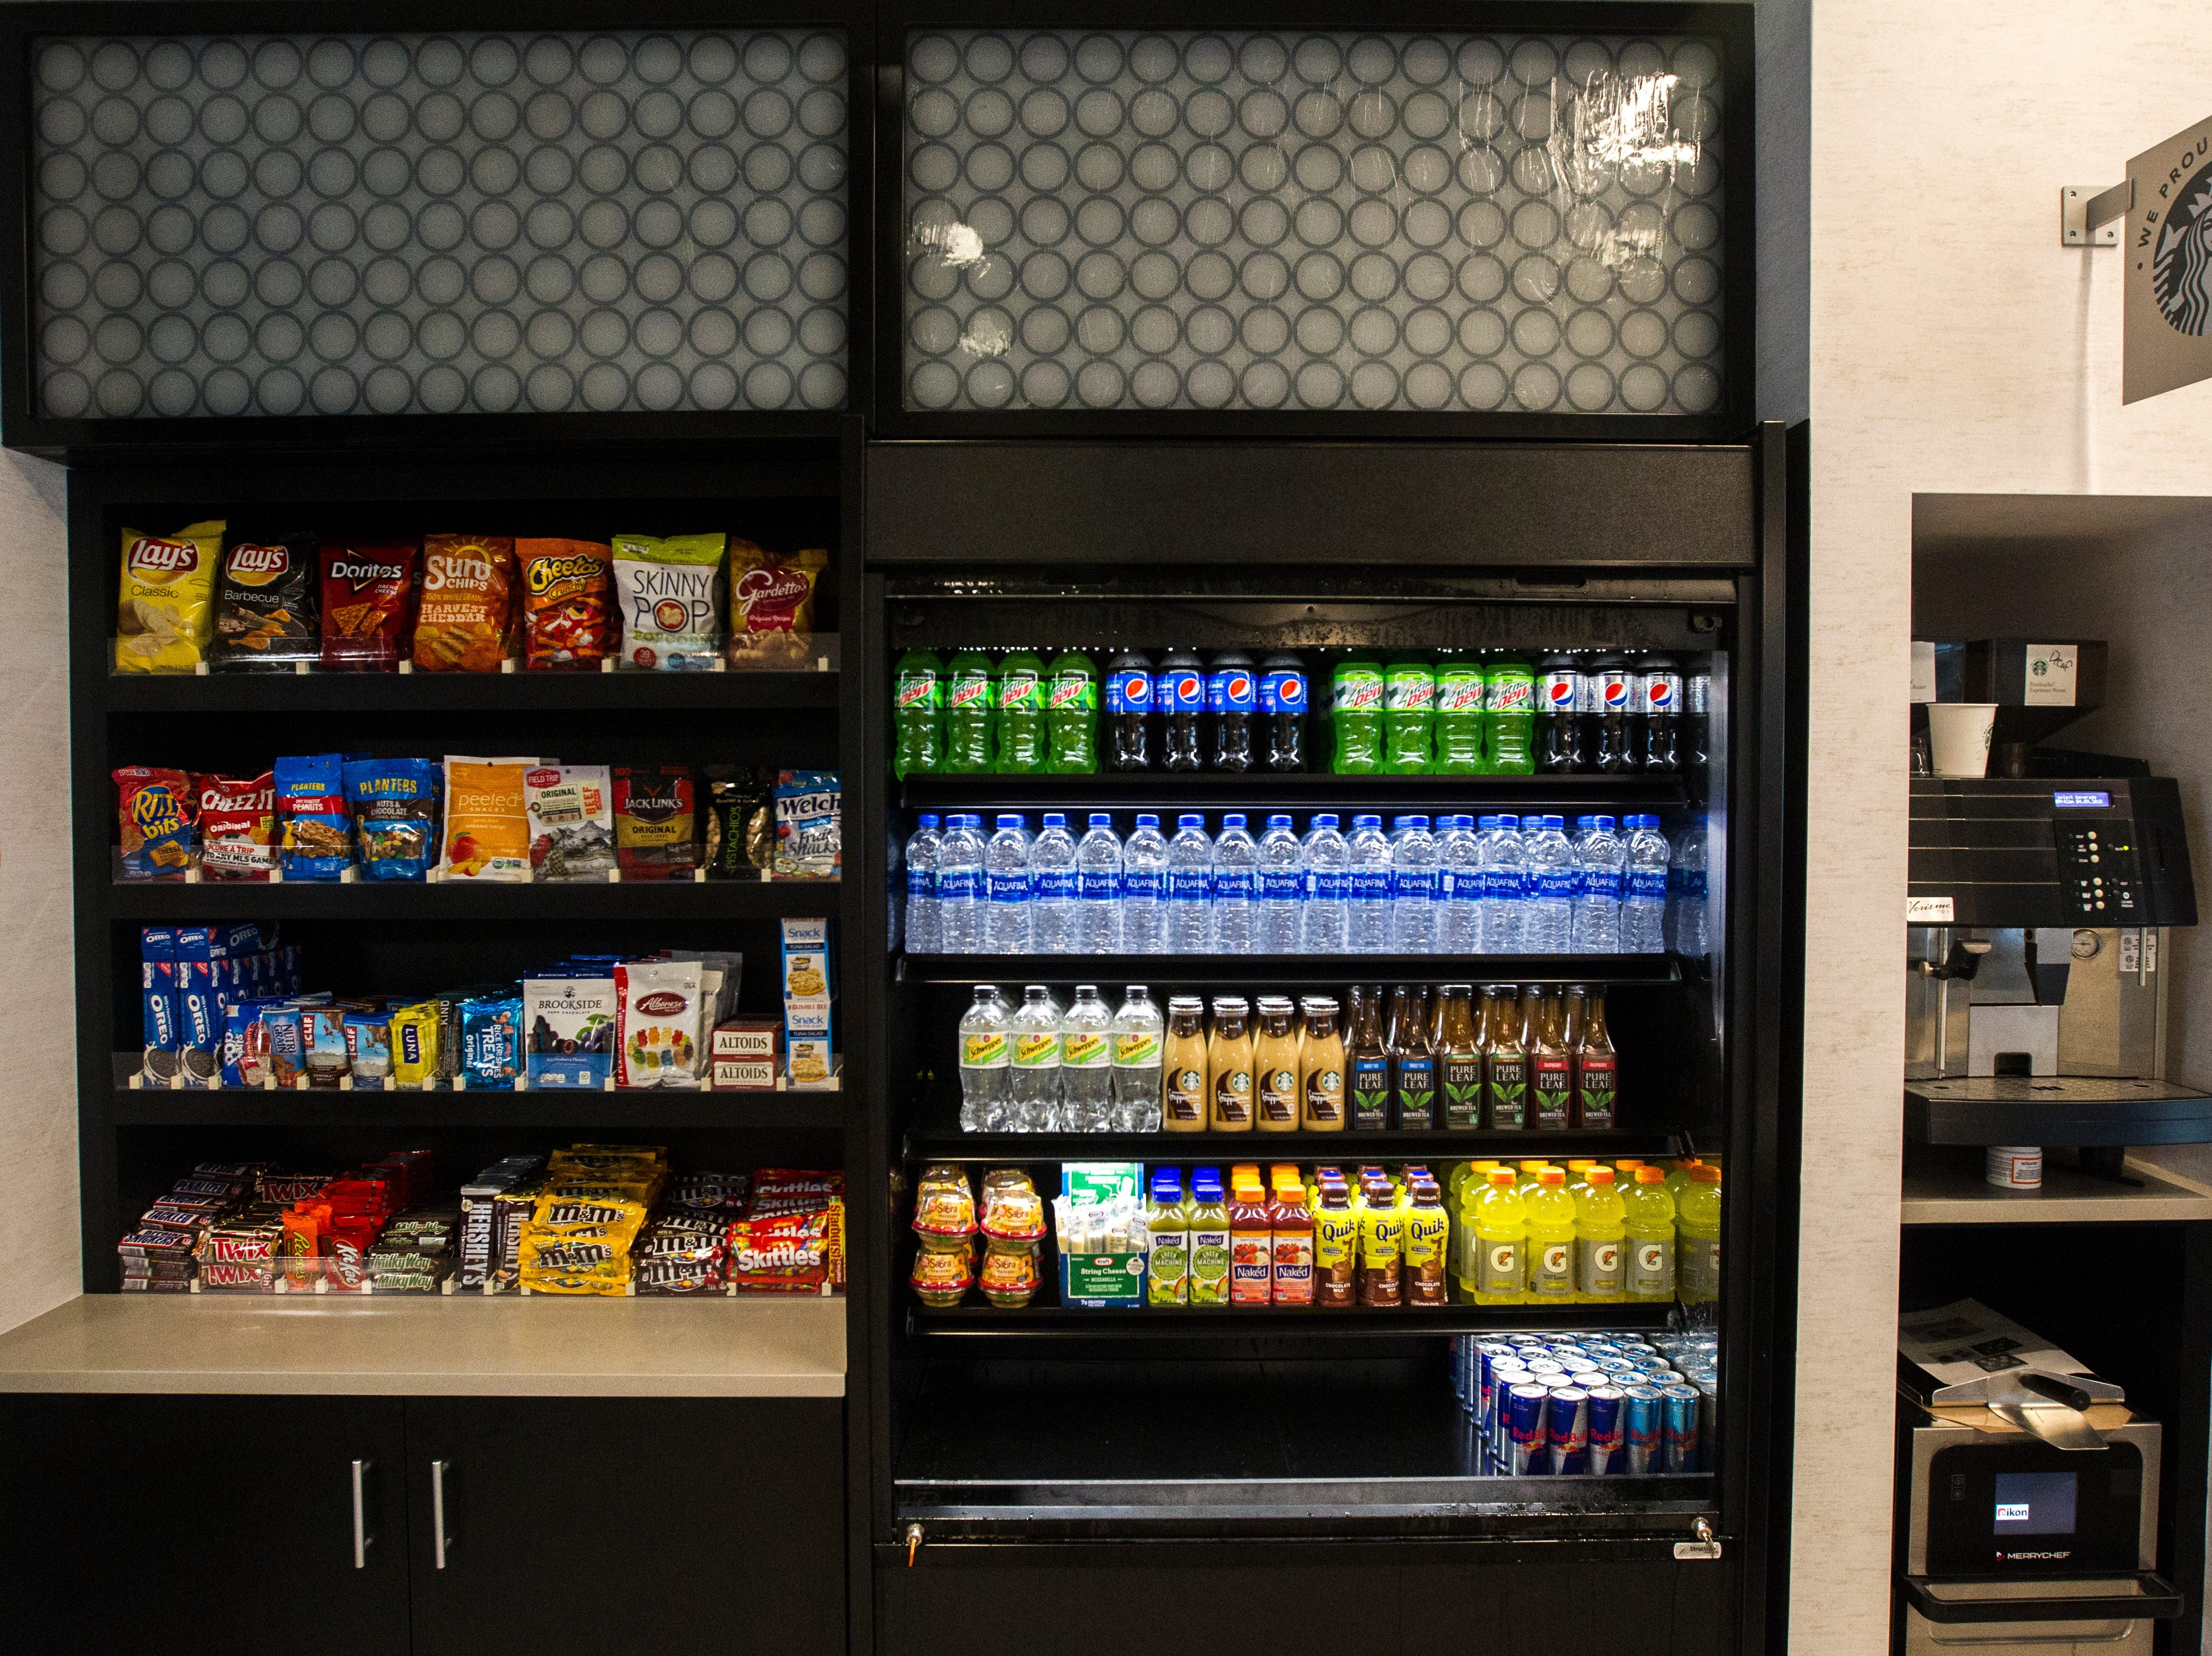 Display cases are stocked full next to the first floor bar during a tour on Tuesday, Sept. 4, 2018, at Hyatt Place on the corner of Court and Linn Streets in downtown Iowa City.